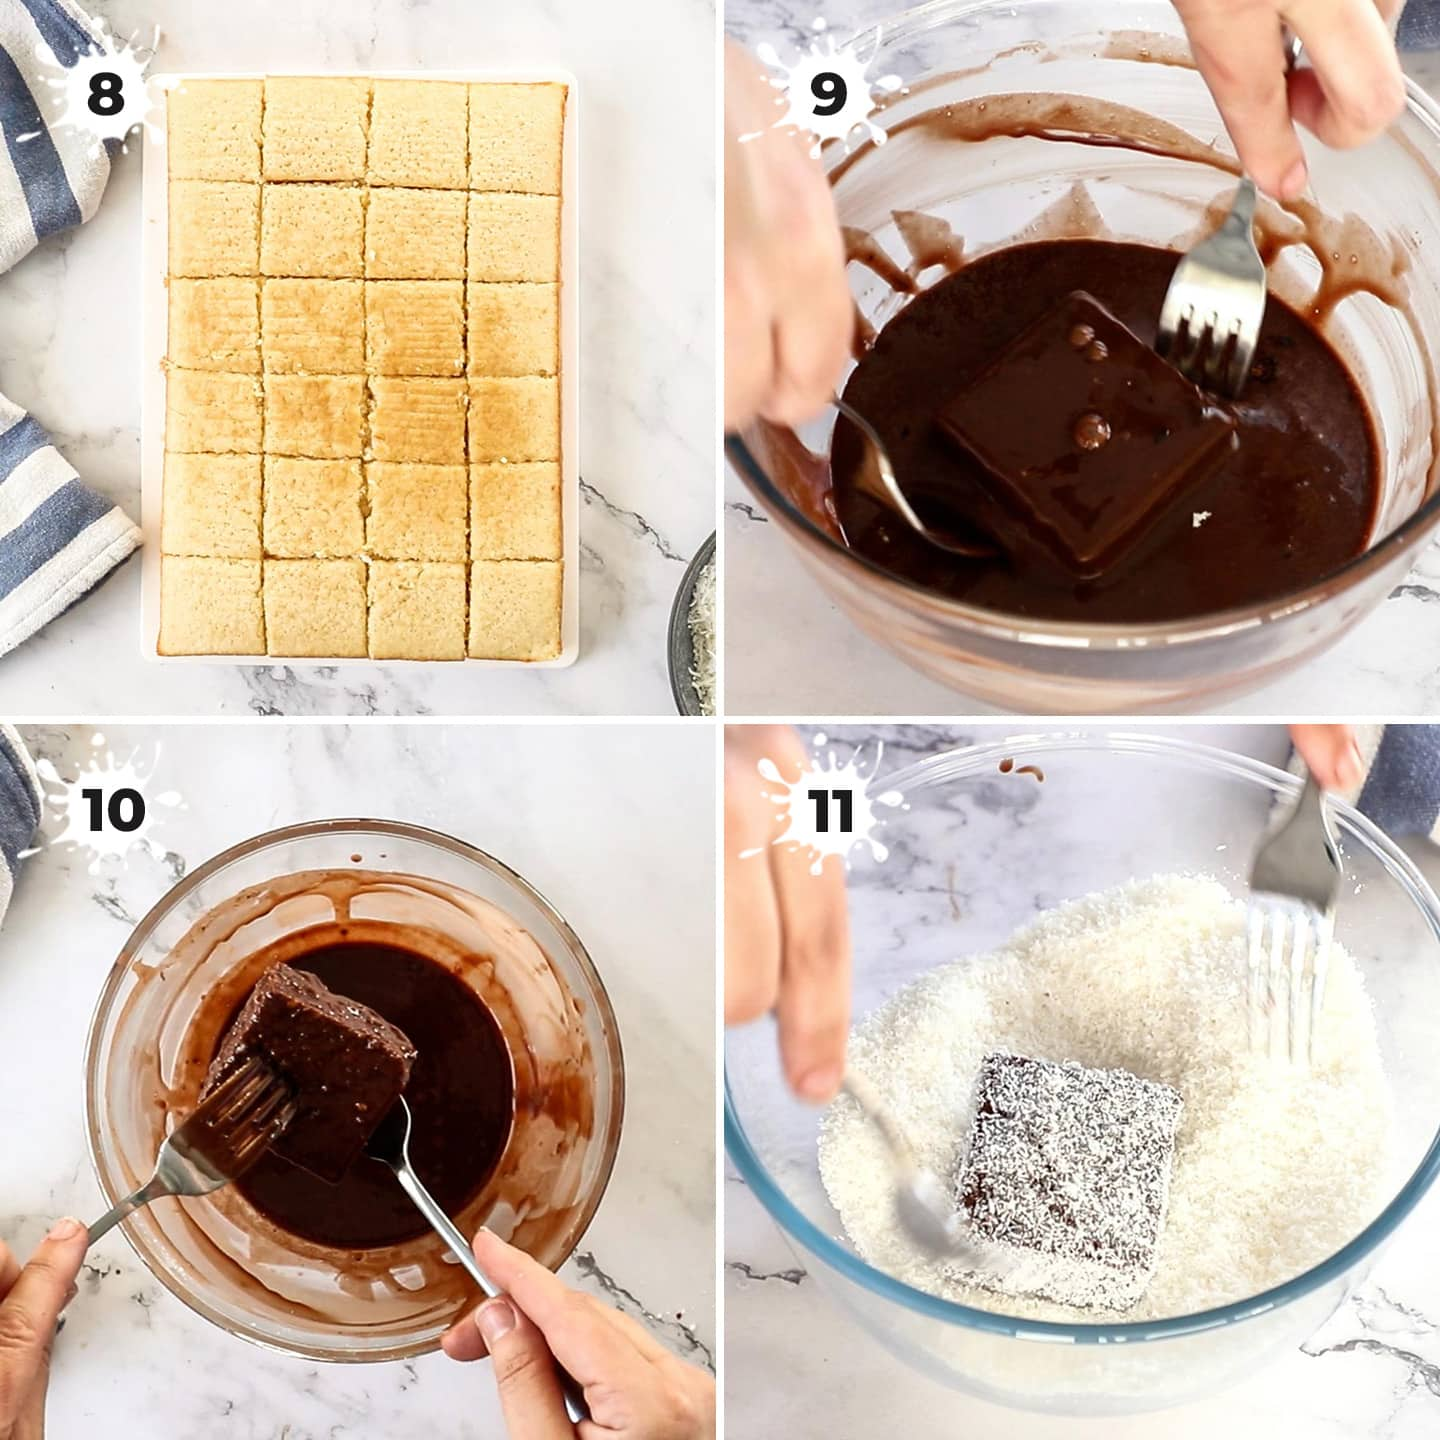 4 images showing how to coat sponge cake for lamingtons in chocolate glaze and coconut.